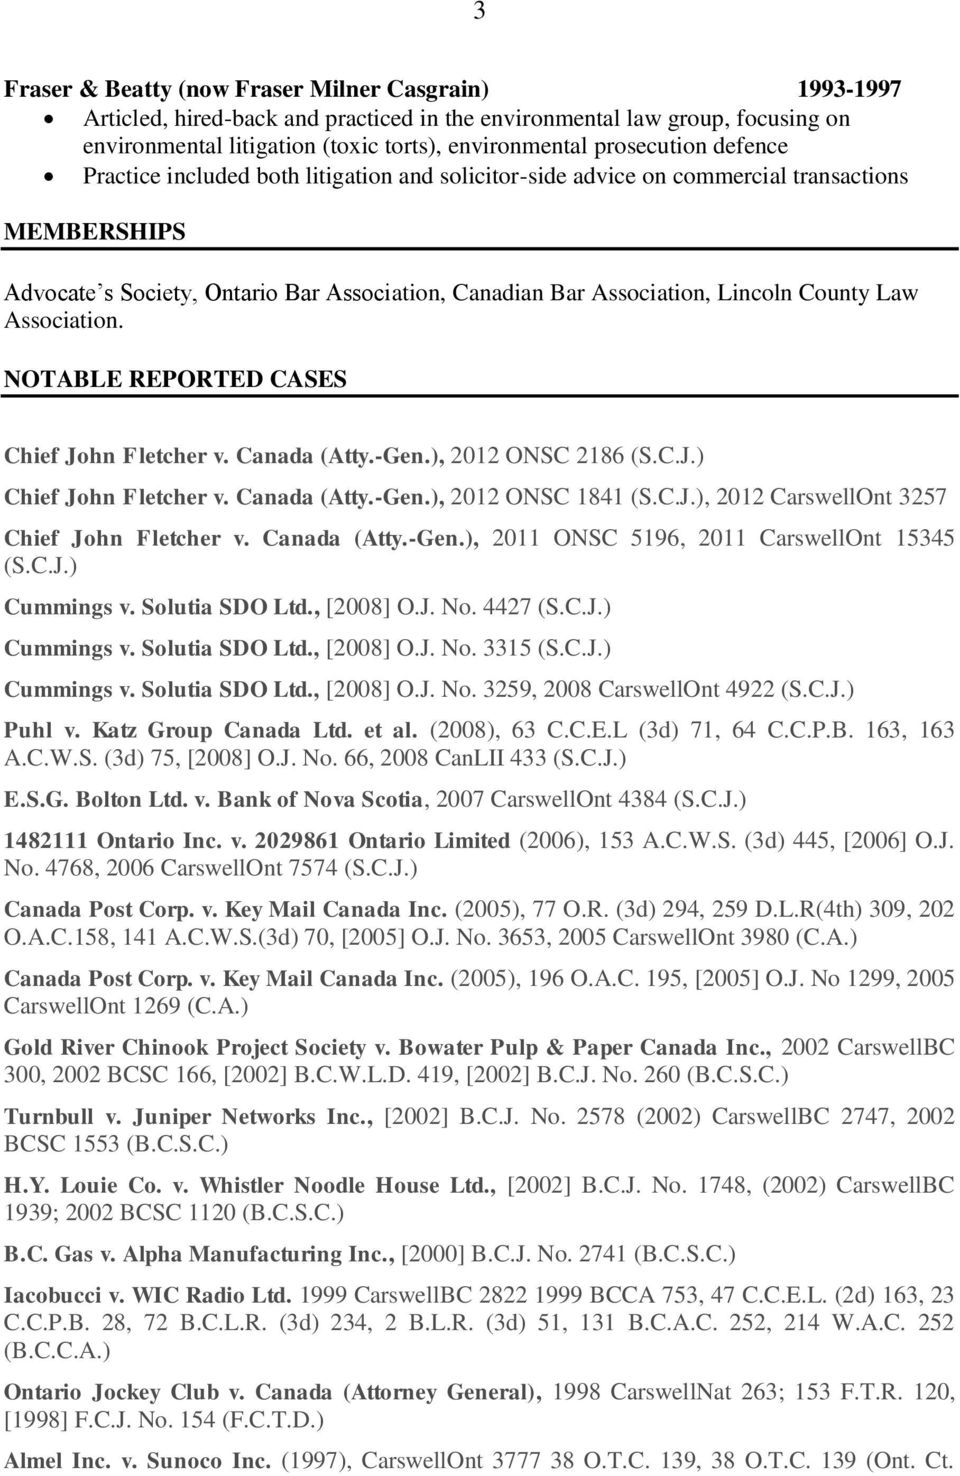 County Law Association. NOTABLE REPORTED CASES Chief John Fletcher v. Canada (Atty.-Gen.), 2012 ONSC 2186 (S.C.J.) Chief John Fletcher v. Canada (Atty.-Gen.), 2012 ONSC 1841 (S.C.J.), 2012 CarswellOnt 3257 Chief John Fletcher v.